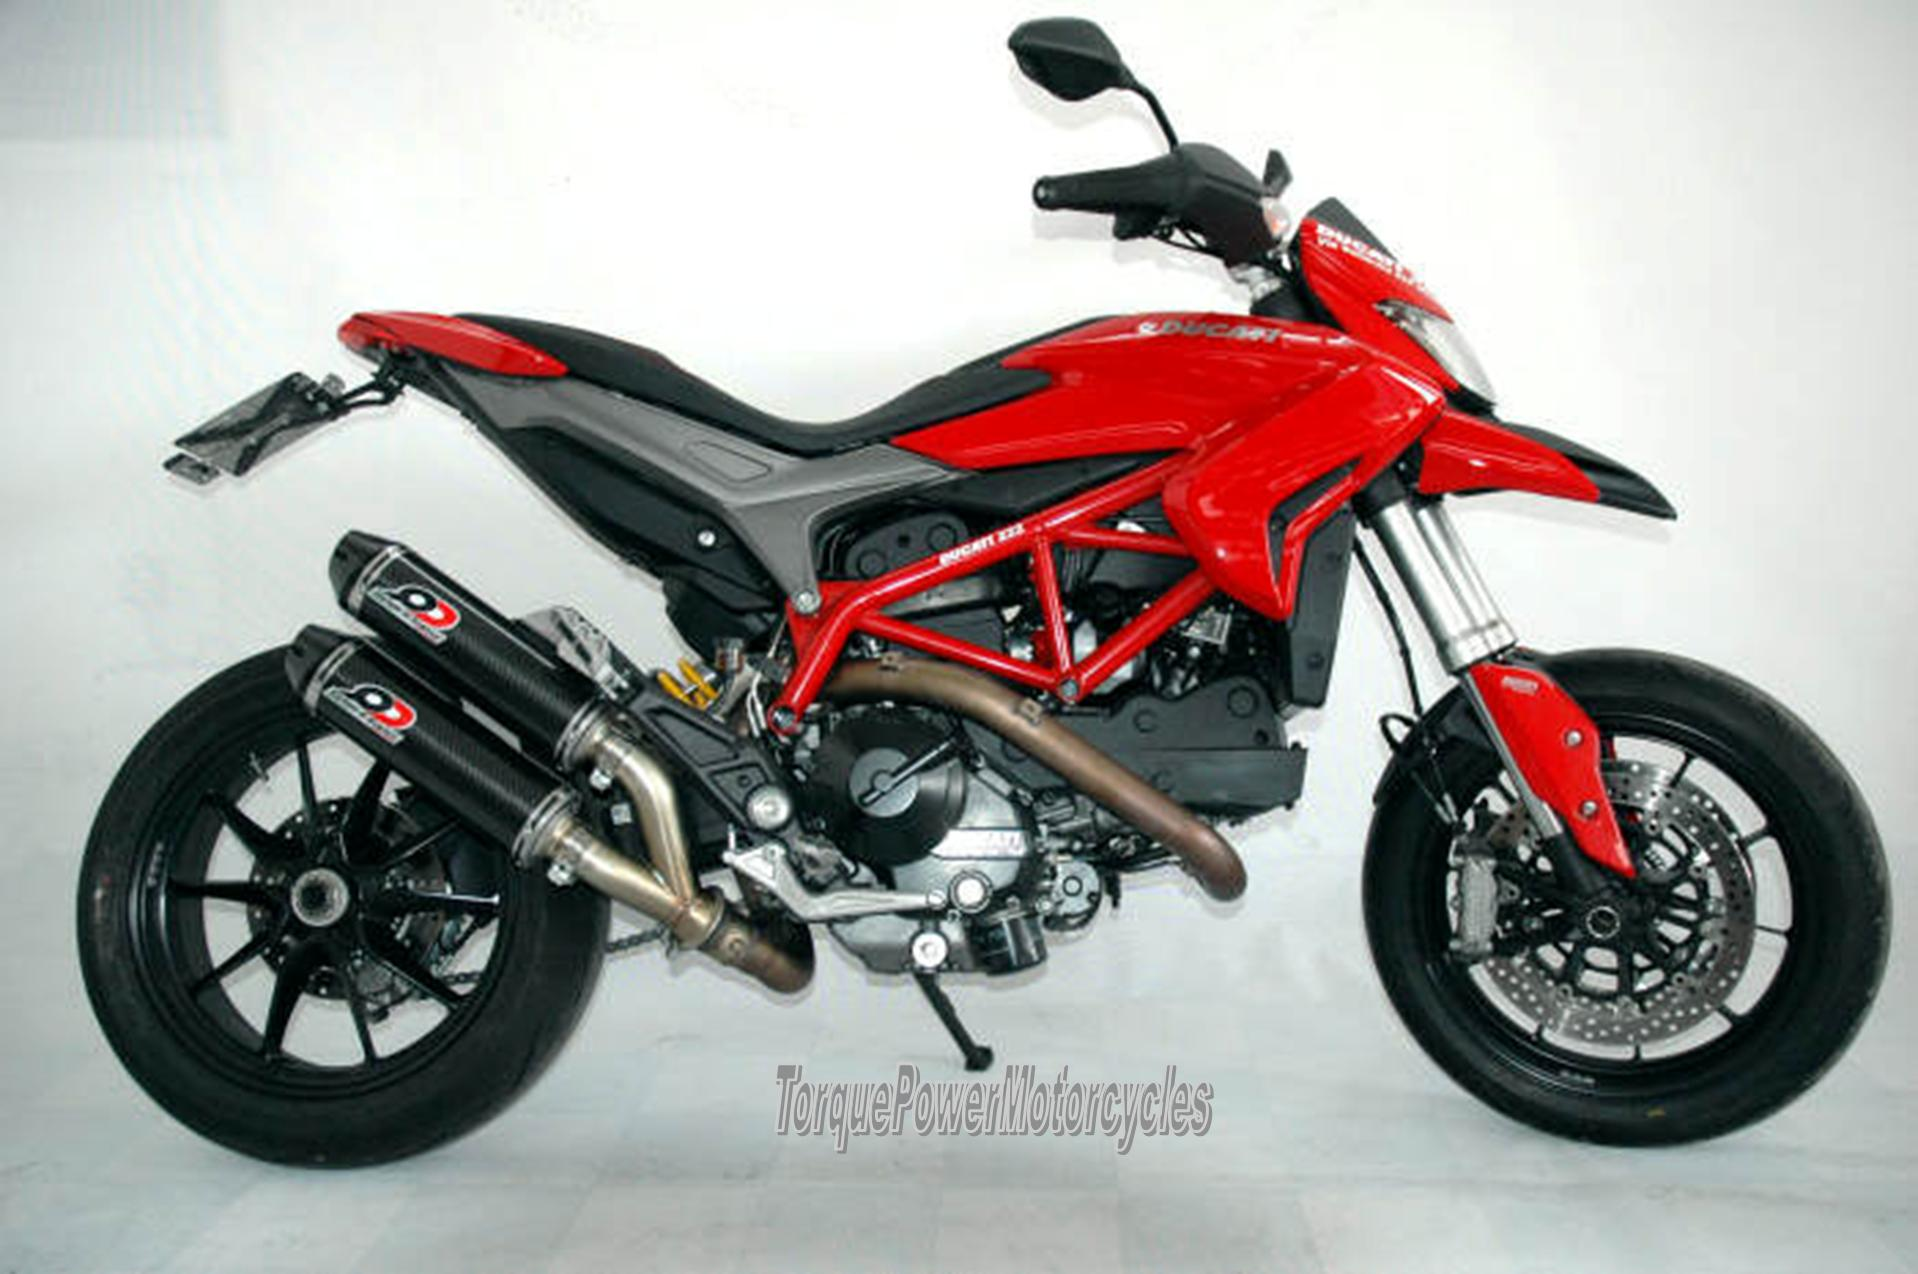 ducati 2013 hypermotard hyperstrada 821 torque power motorcycles. Black Bedroom Furniture Sets. Home Design Ideas